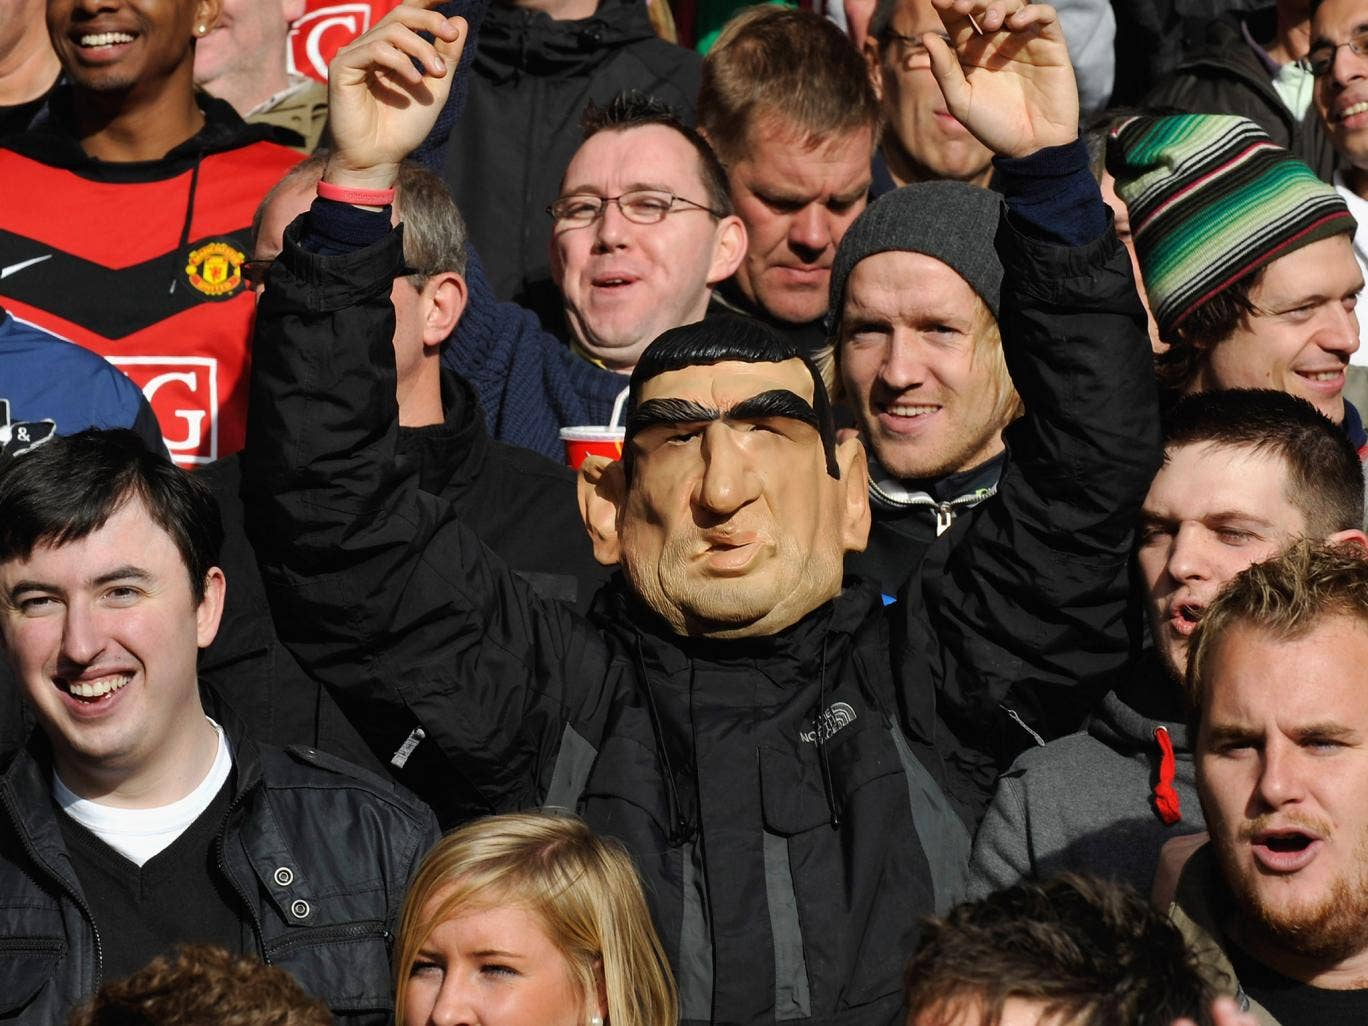 A Manchester United supporter is spotted in the crowd wearing an Eric Cantona mask